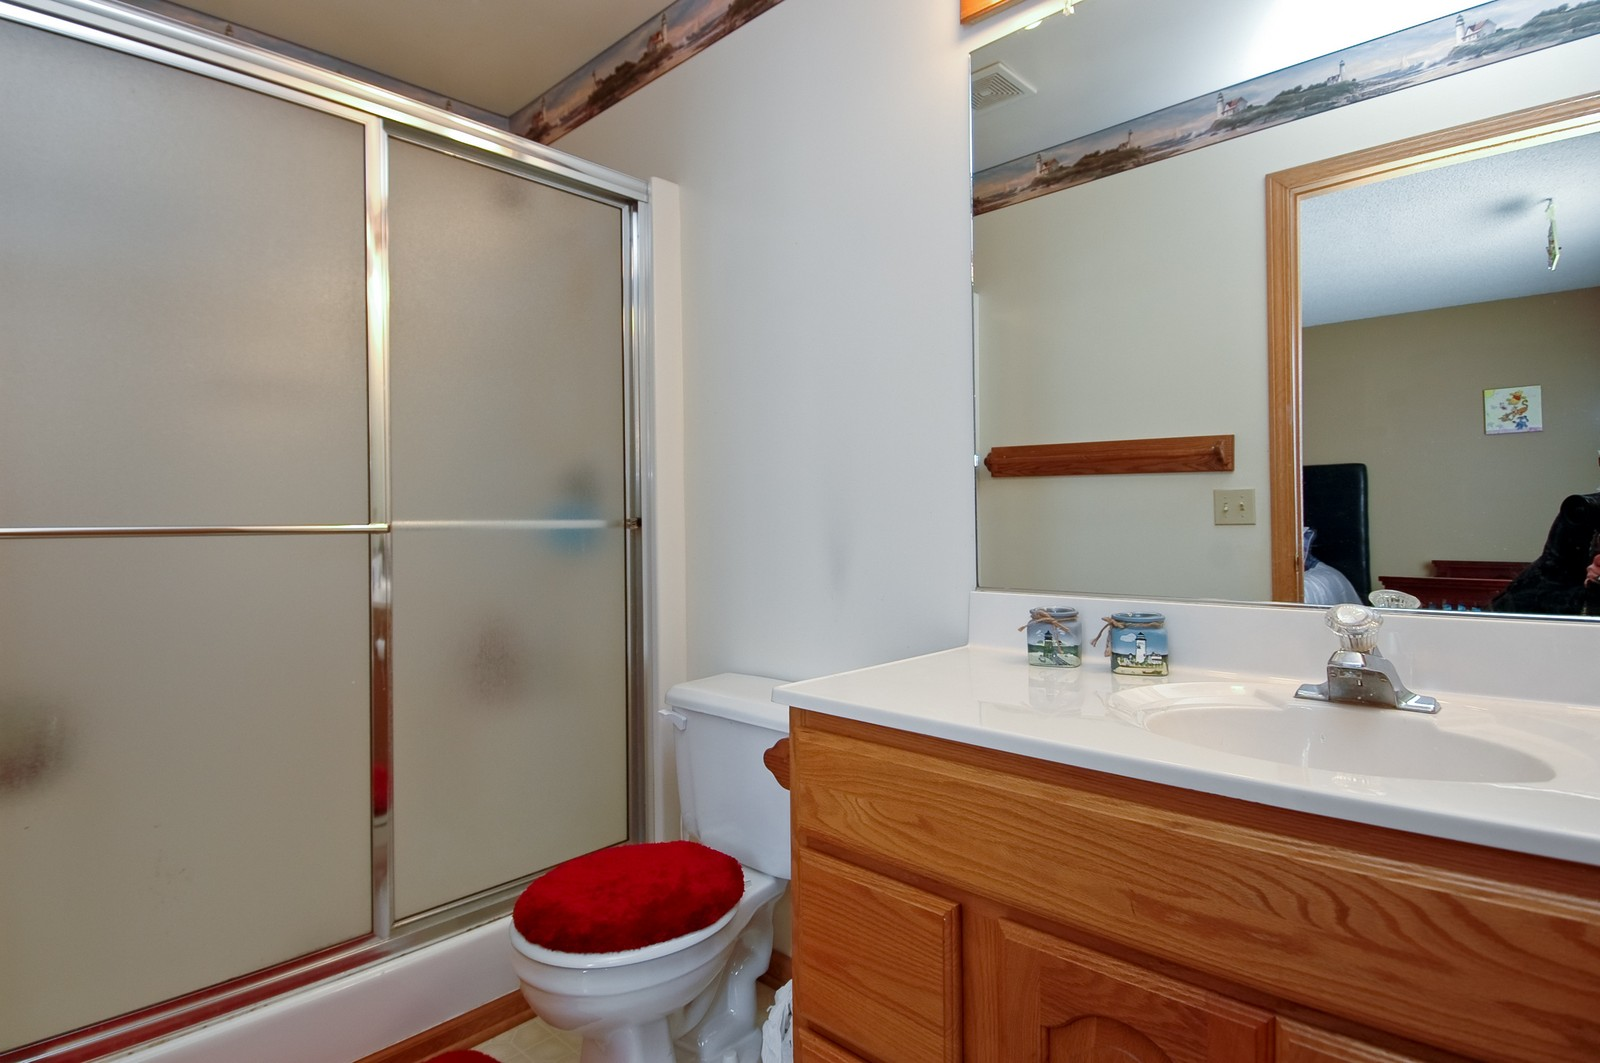 Real Estate Photography - 400 West Wood, Crystal Lake, IL, 60014 - Master Bathroom